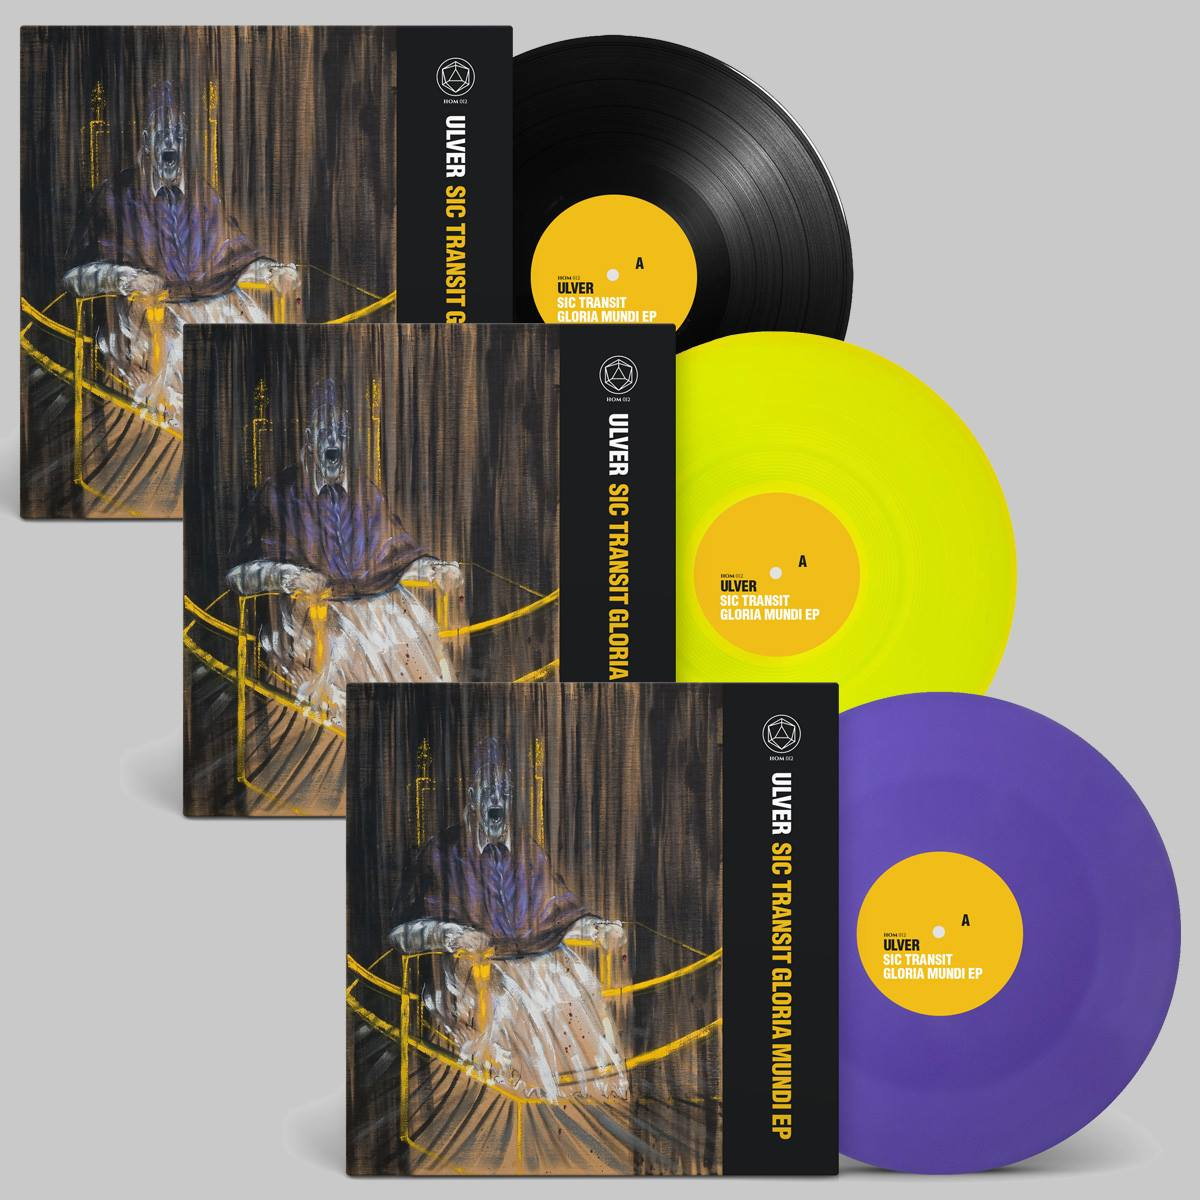 Ulver Announce a Vinyl Re-Issue of the Sic Transit Gloria Mundi EP, Plus Two New Shows